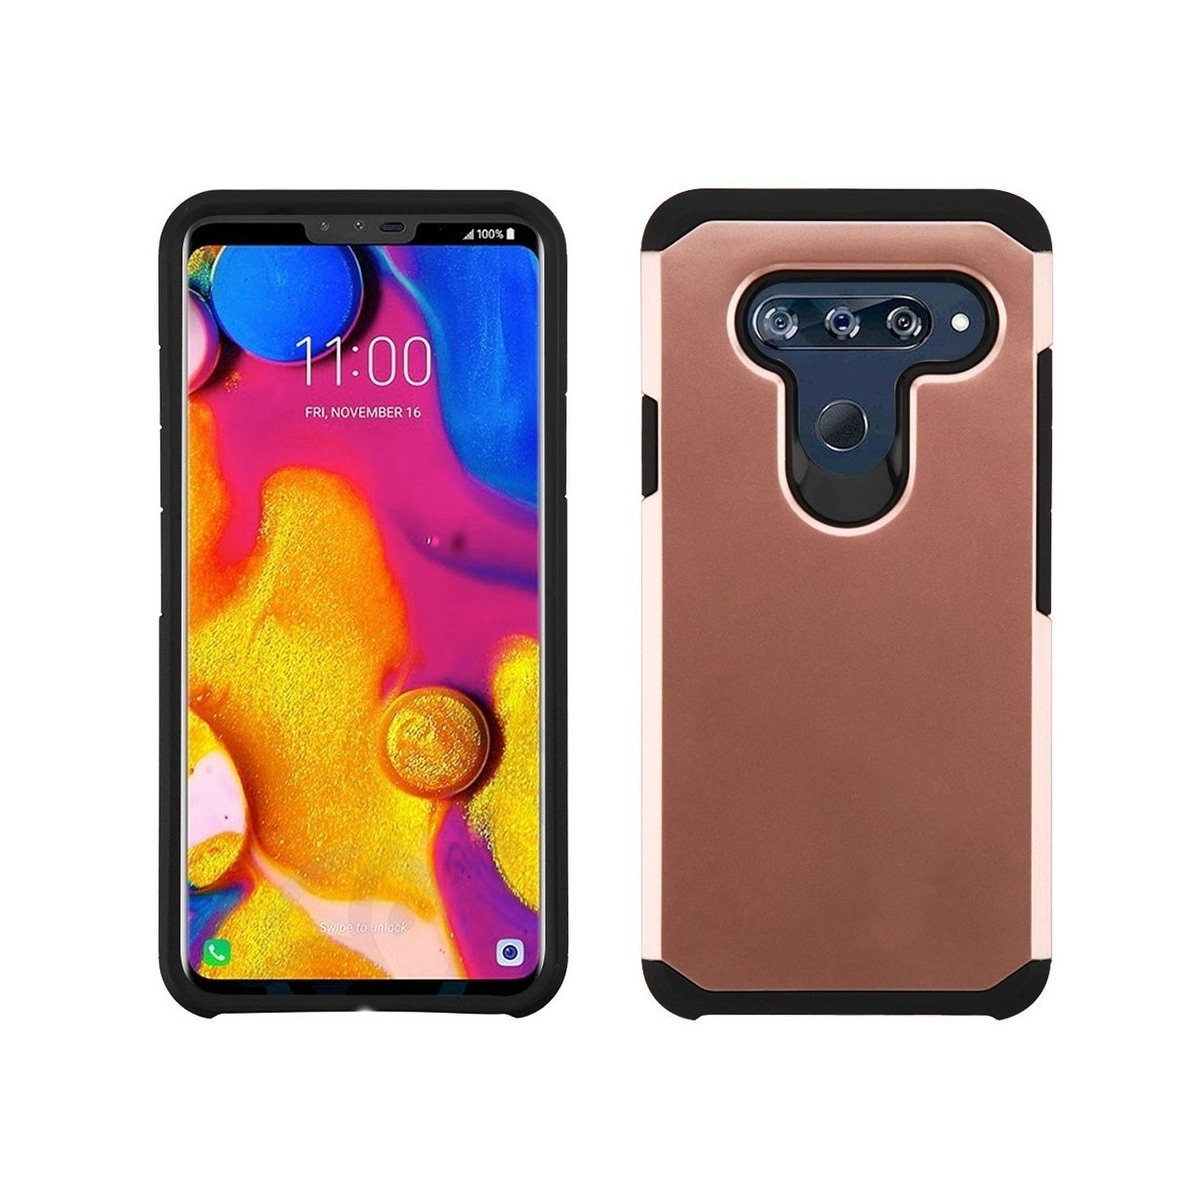 timeless design 8fcd4 eb472 Insten Astronoot Dual Layer Hybrid PC/TPU Rubber Case Cover for LG V40 ThinQ